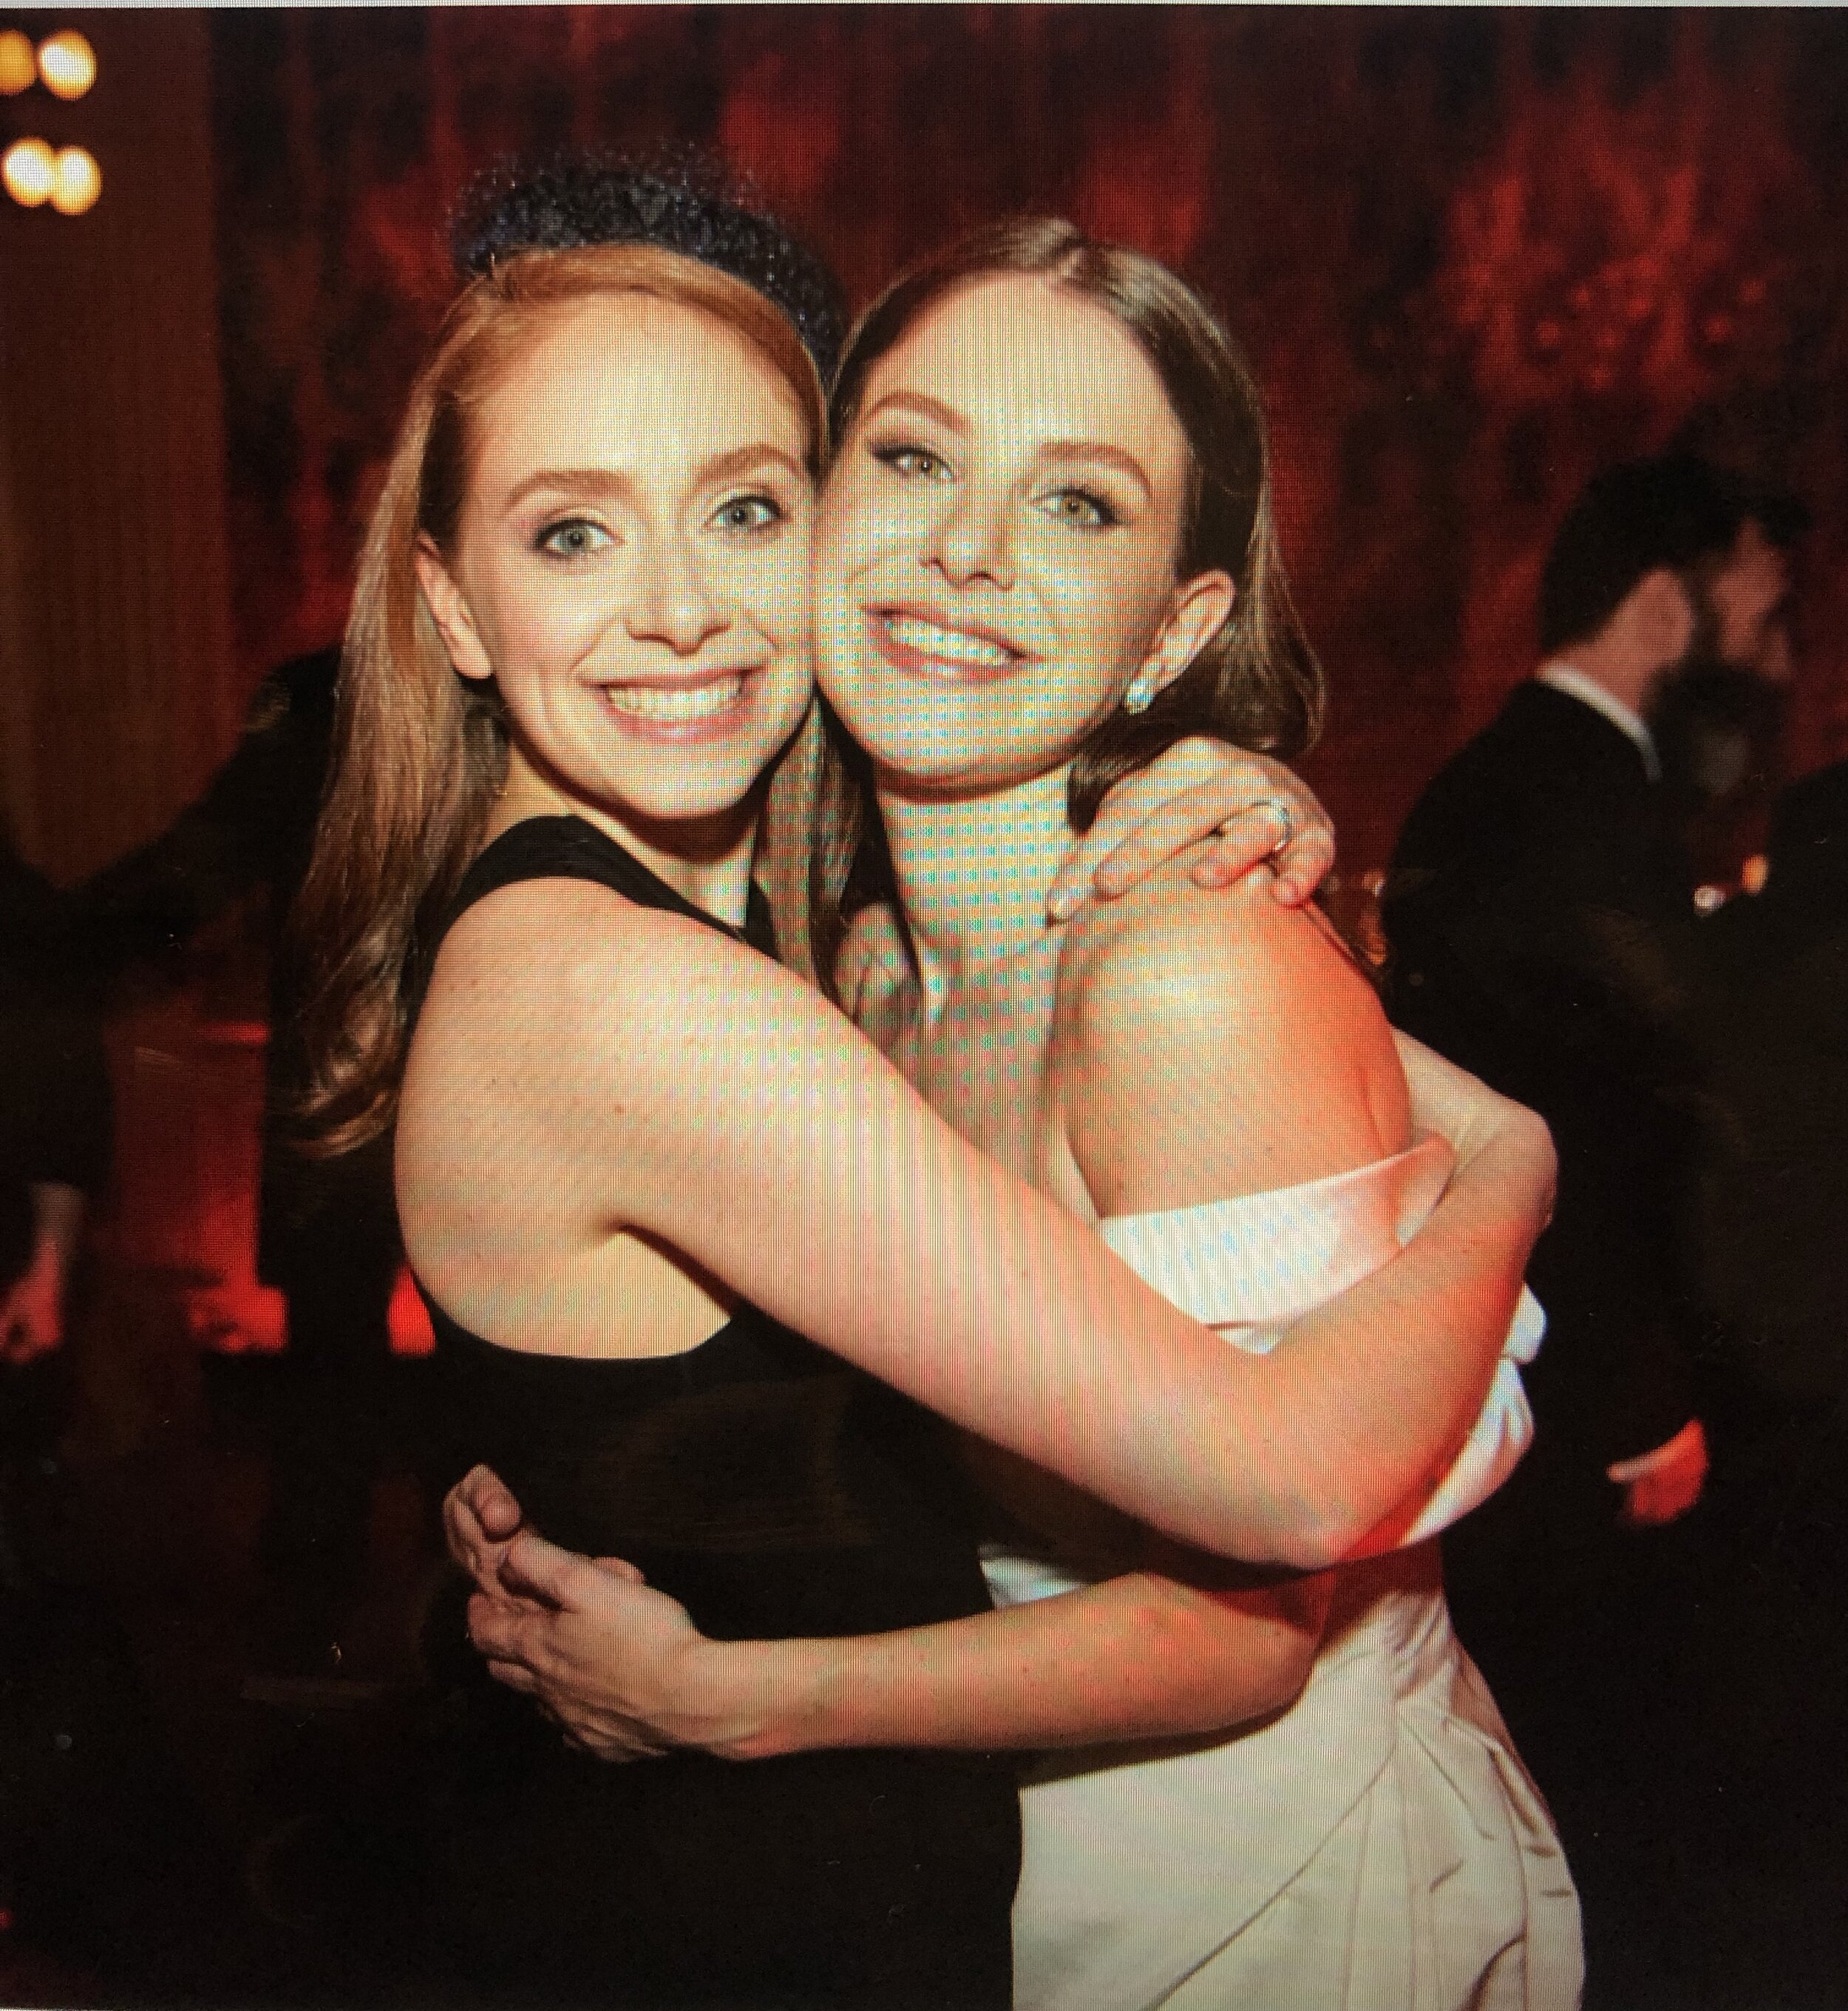 Ruthie and me at her wedding to Steven Chaiken at the Frick Collection.